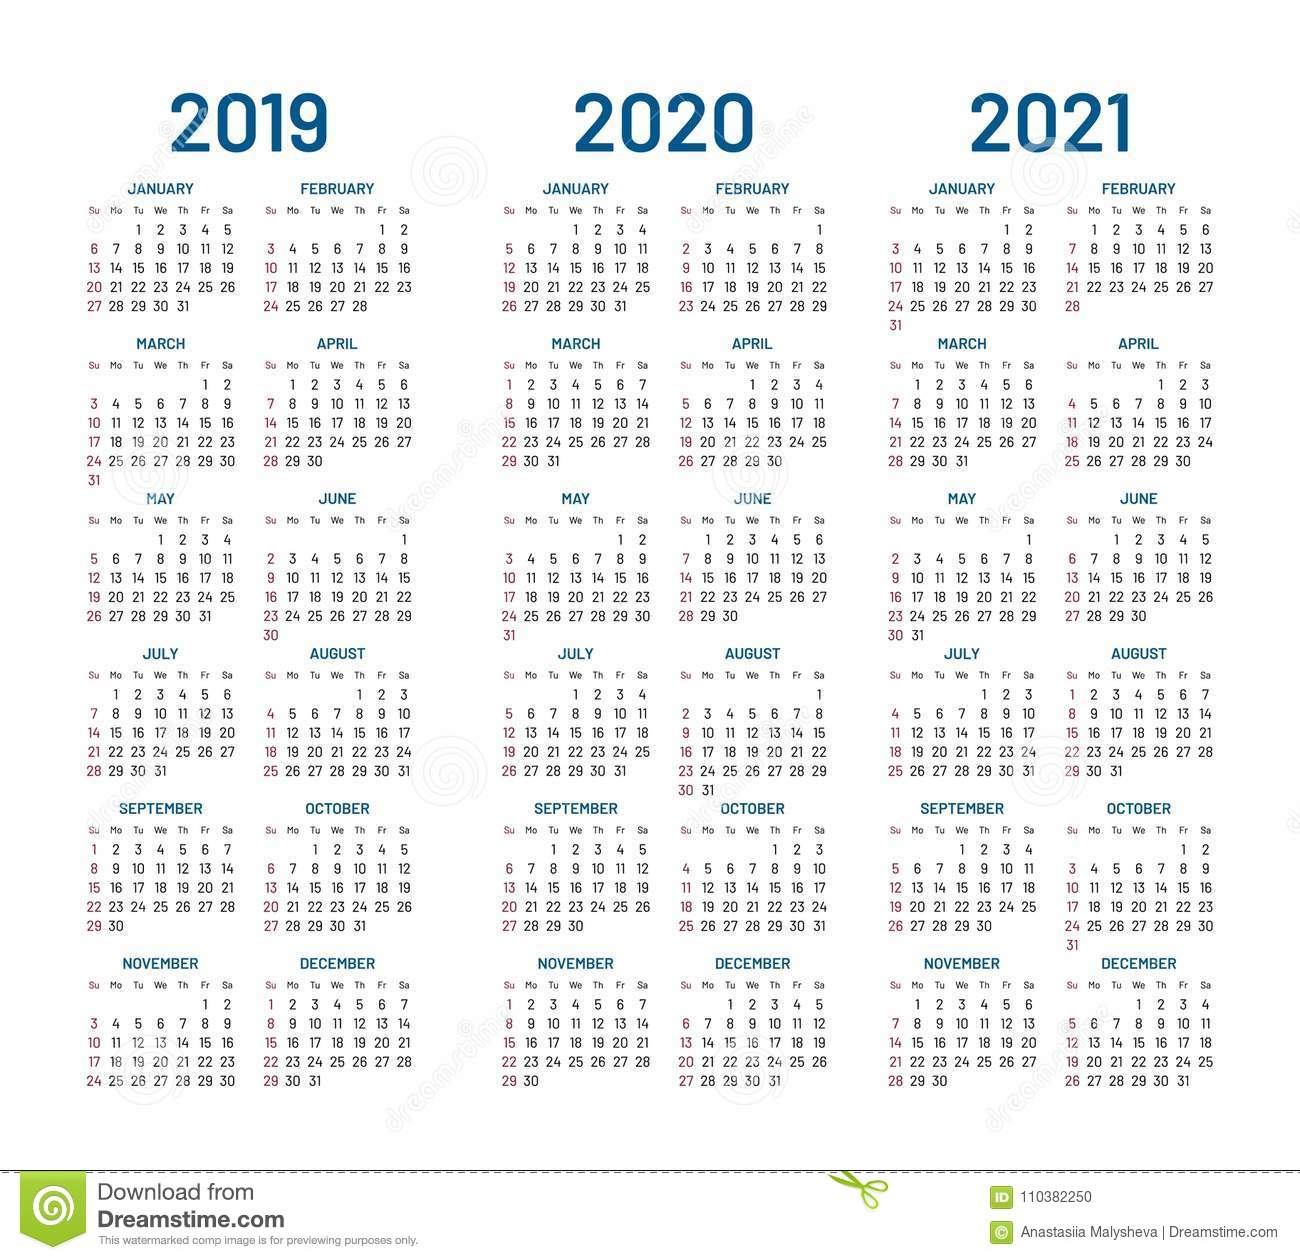 454 Retail Calendar 2019 Vs 2020 – Samyysandra Intended For 4 5 4 Retail Calendar 2021 2020